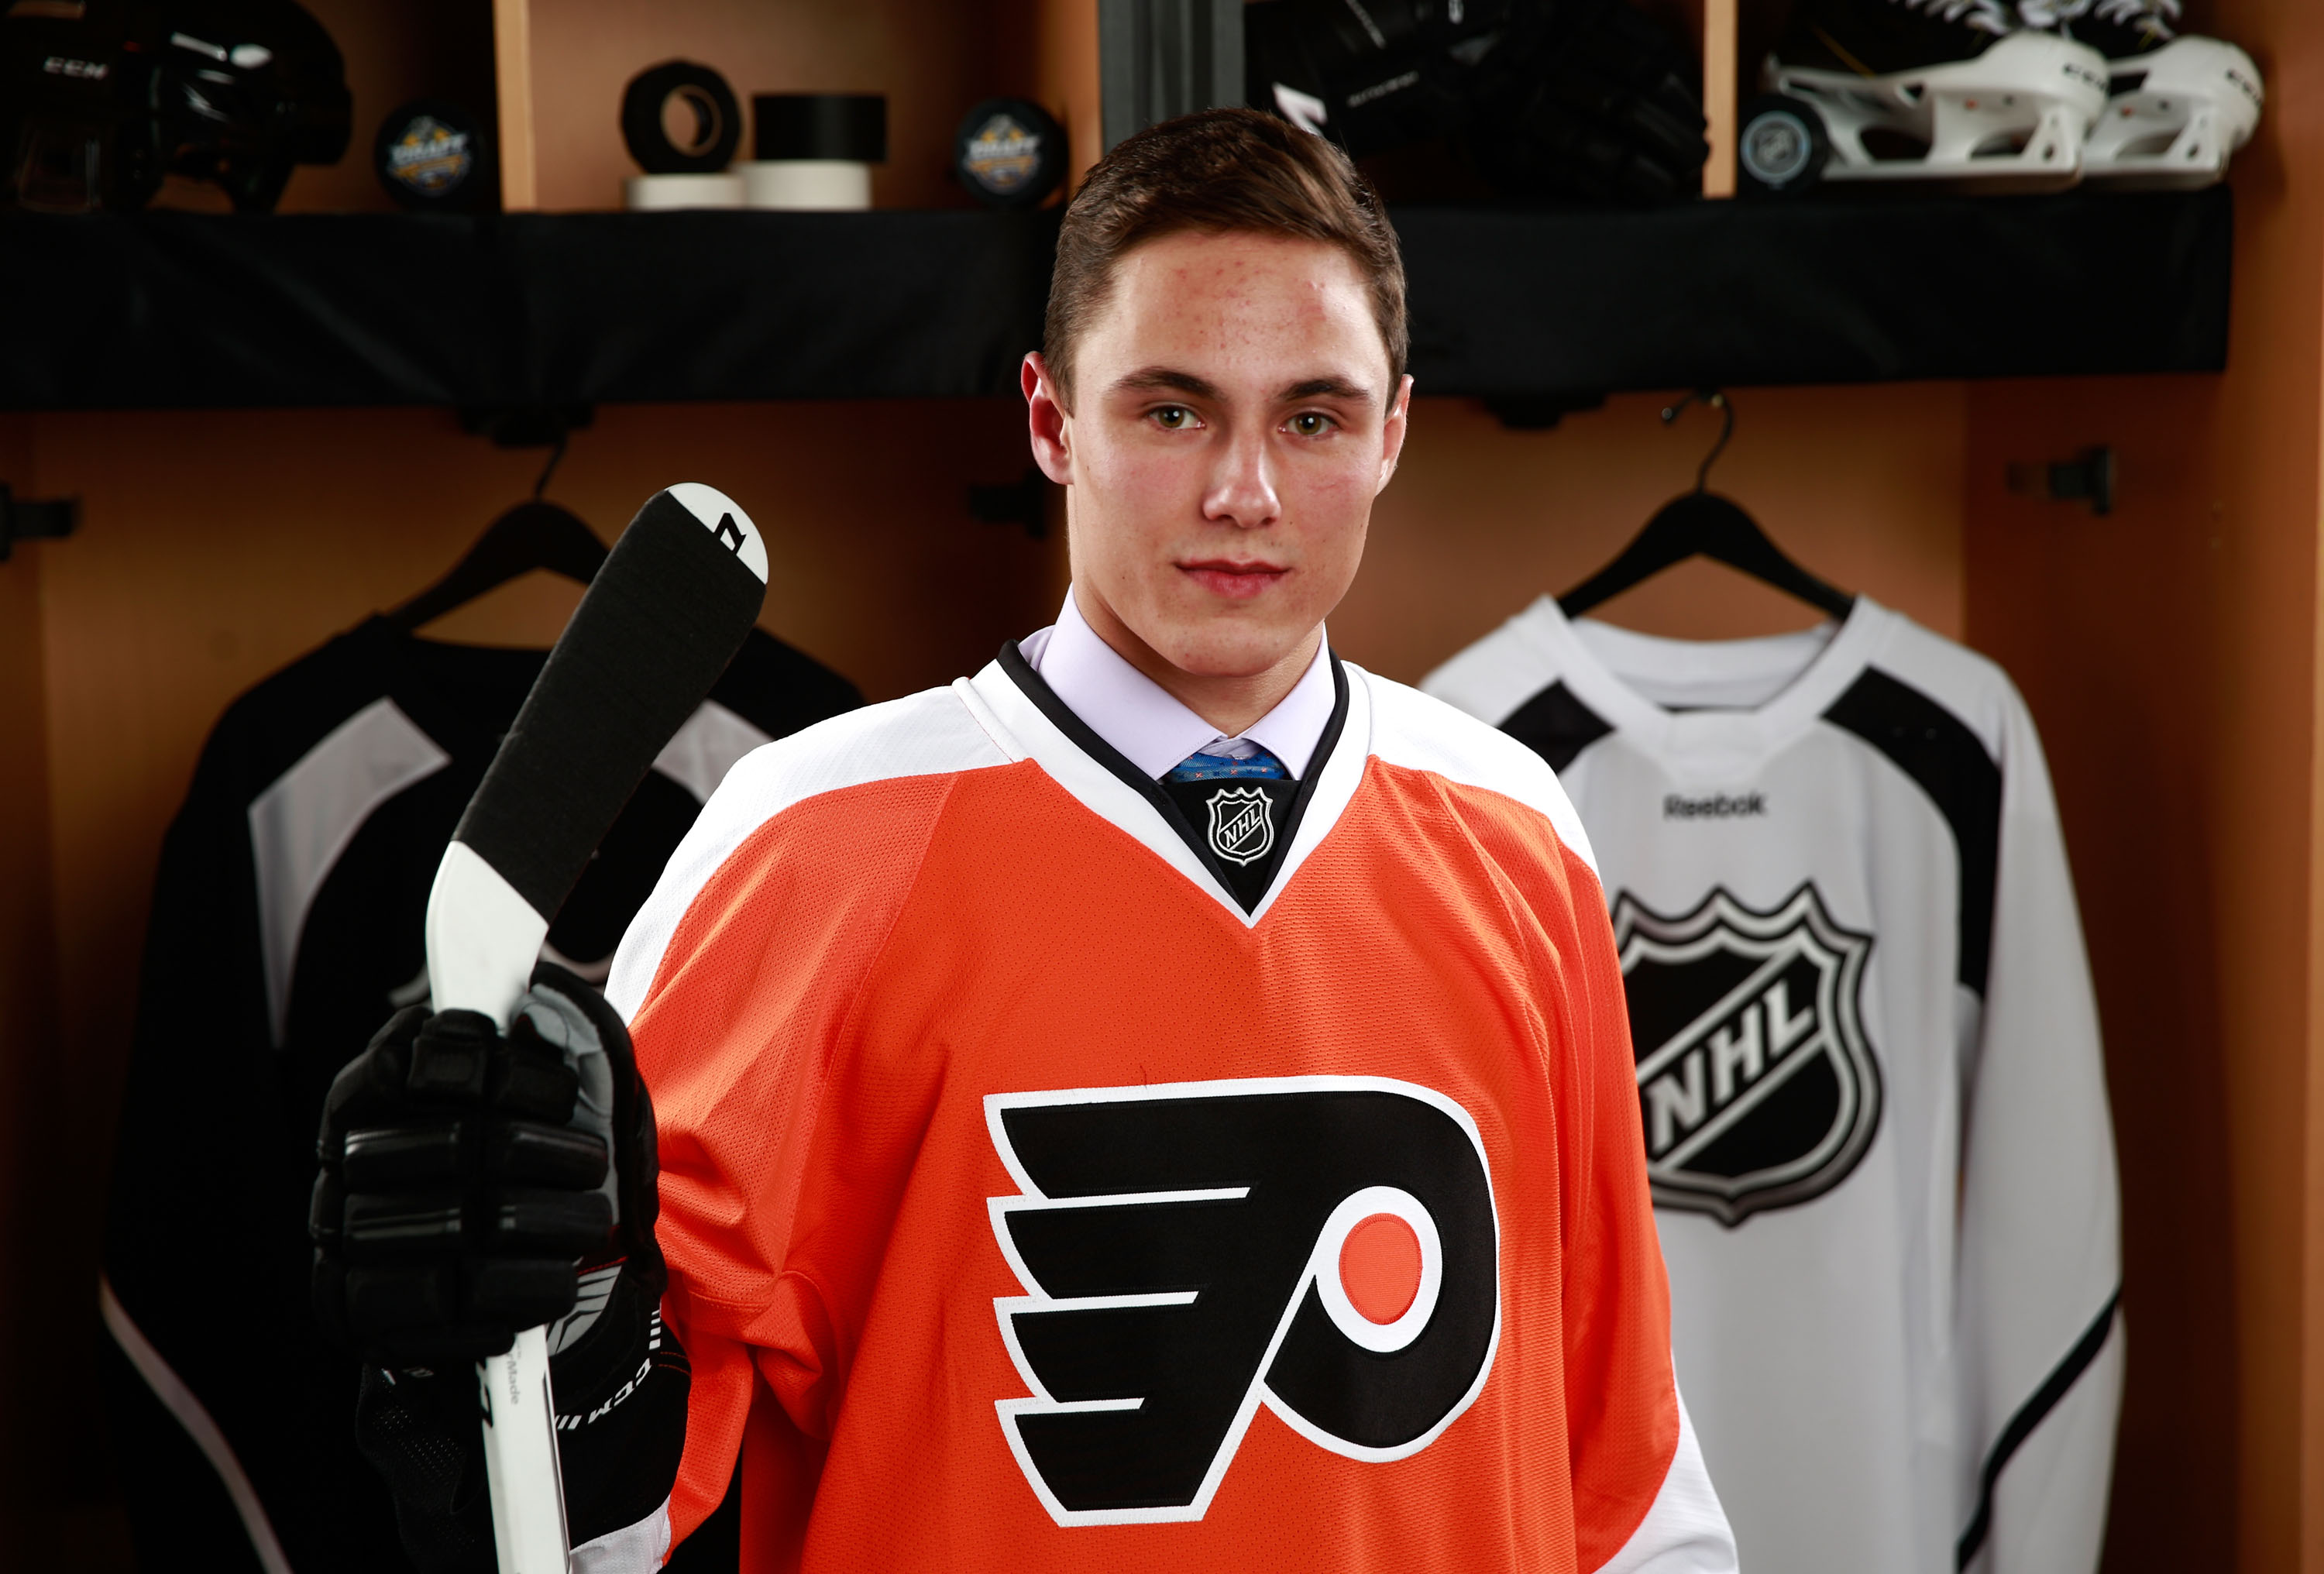 QMJHL: Flyers Prospect German Rubtsov Leaves Russia, Will Play In CHL League